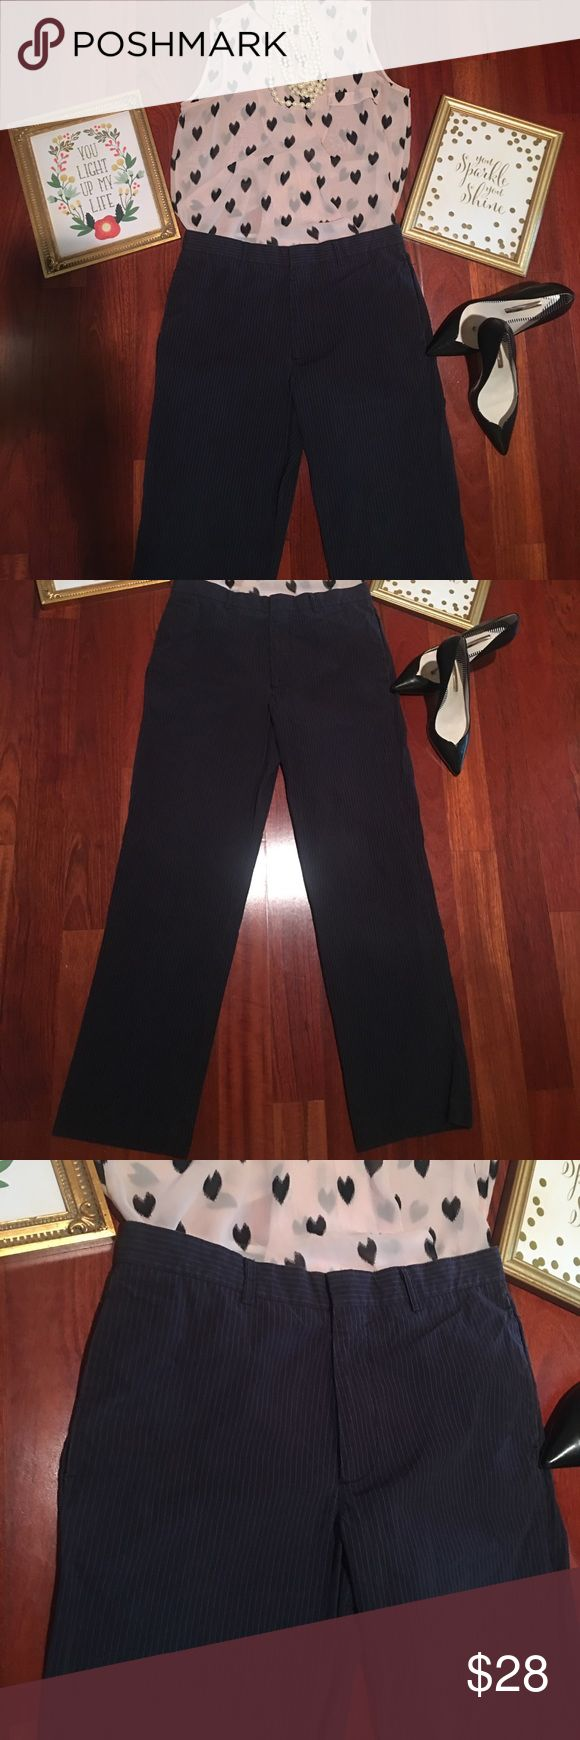 J Crew slacks 33x32 women's pinstriped slacks J Crew slacks in excellent condition. Never worn. New without tags. I lost weight and now can't fit into. Beautiful slacks. Offers welcome and all purchases receive free gift 🎁! J. Crew Pants Trousers